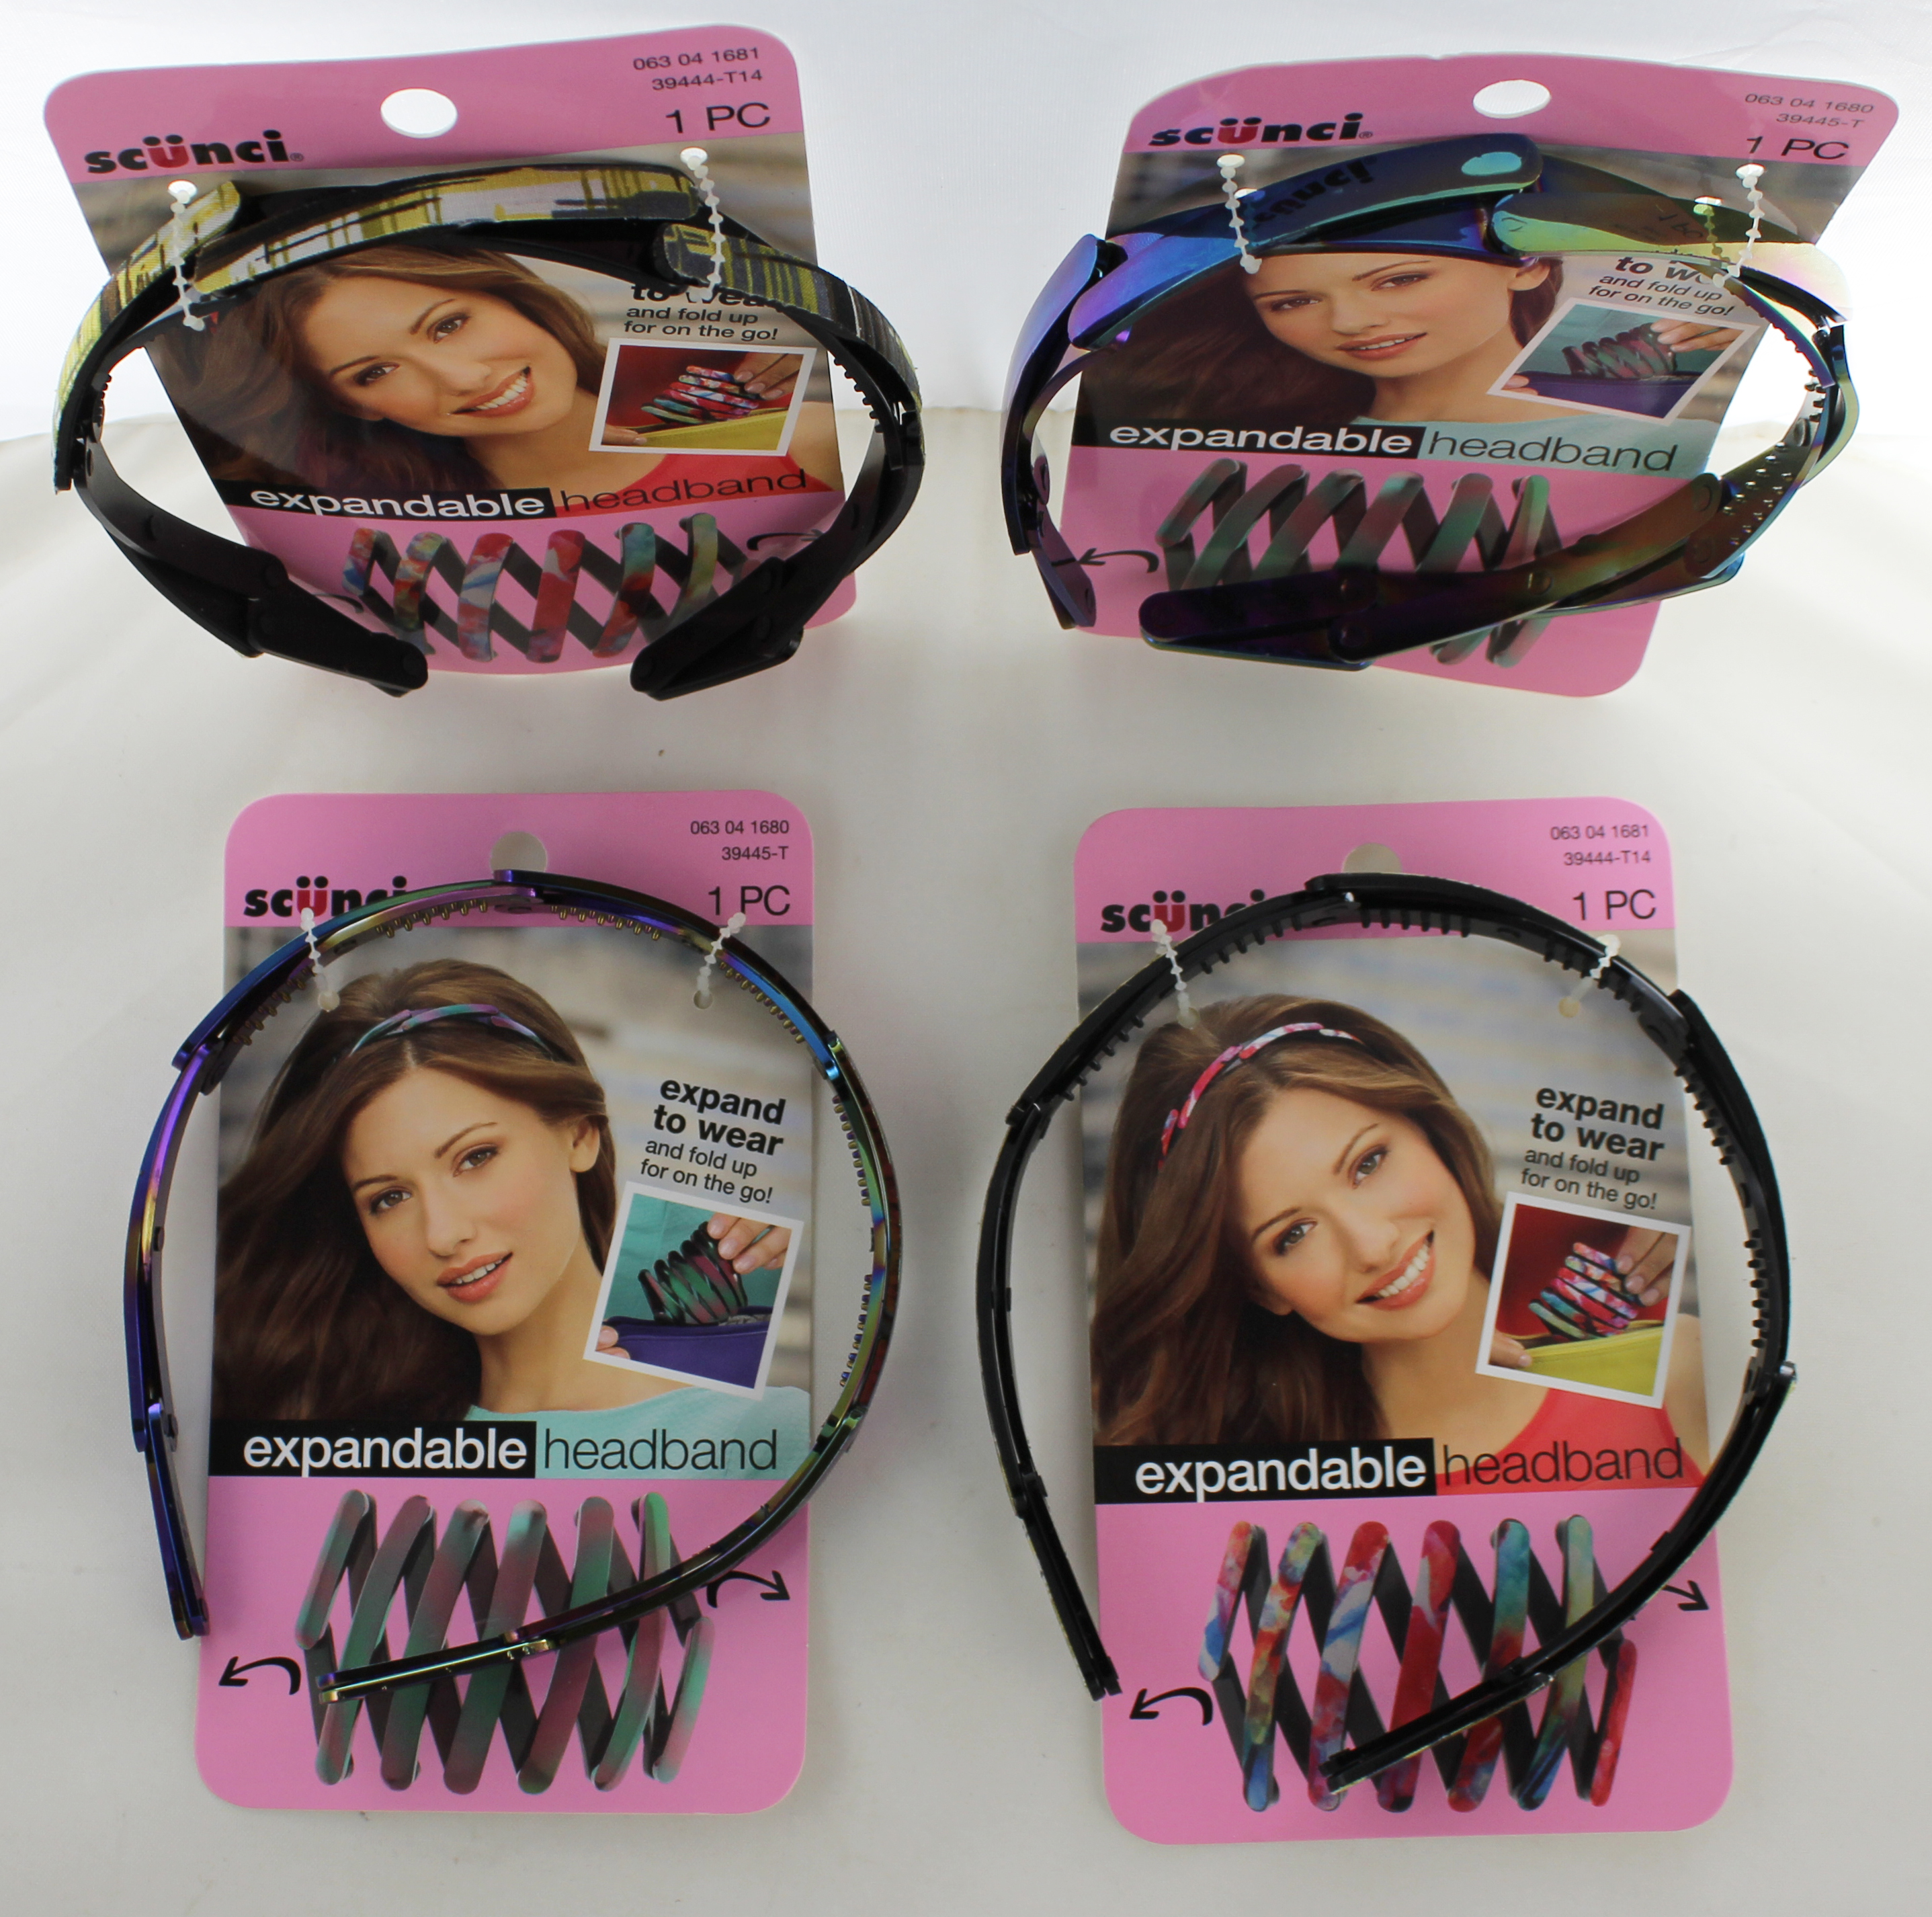 Scunci Headband Mixed Case of 36 Expandable Headbands